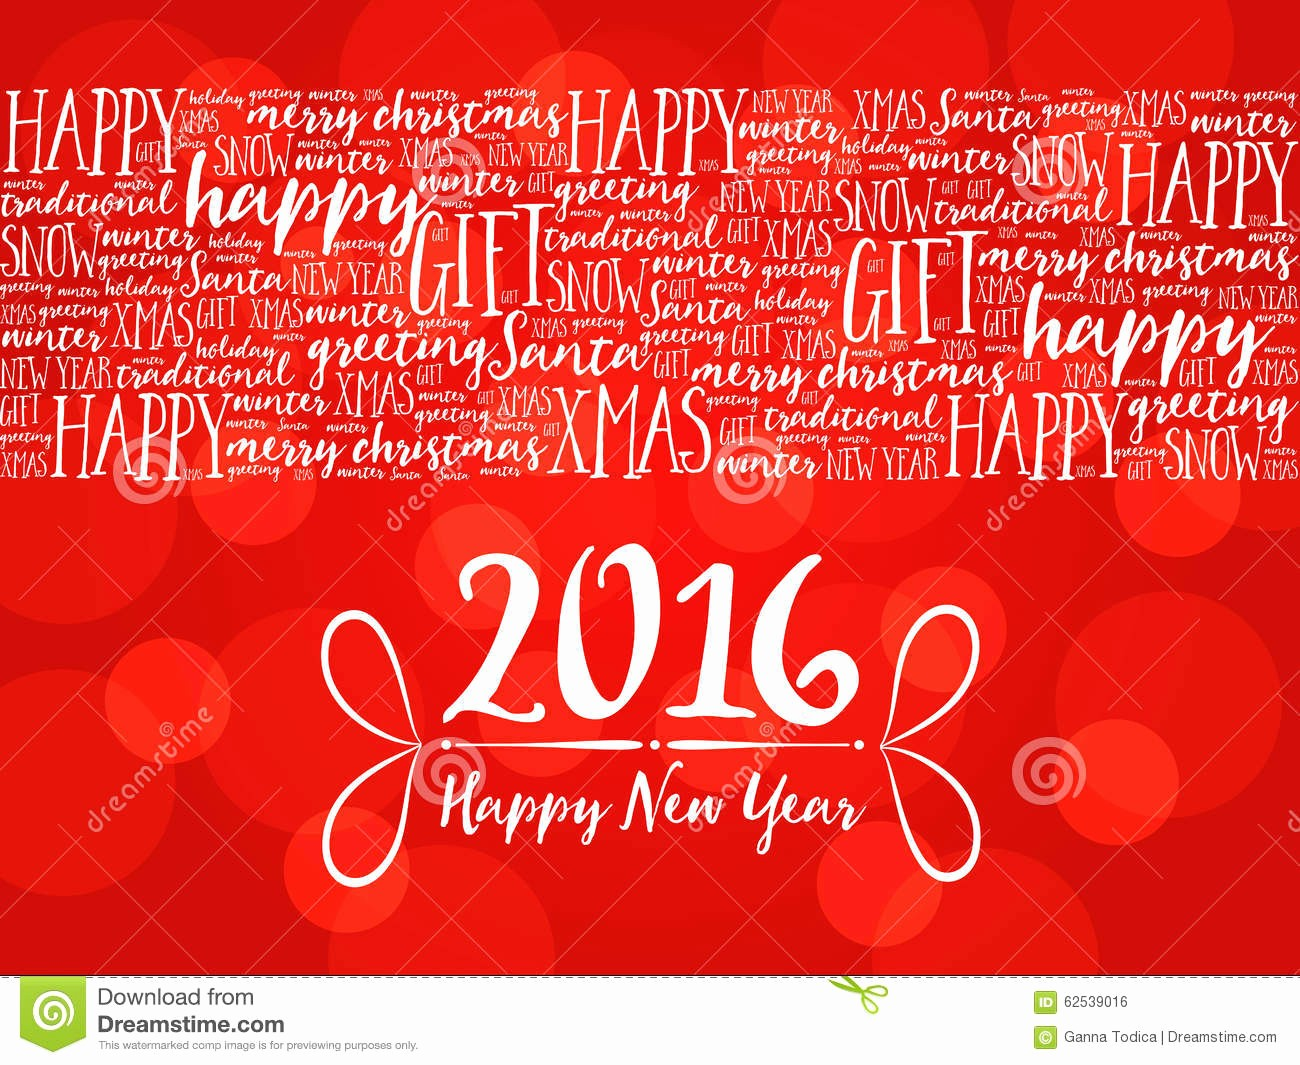 Christmas Background Images for Word Best Of 2016 Happy New Year Christmas Background Word Cloud Stock